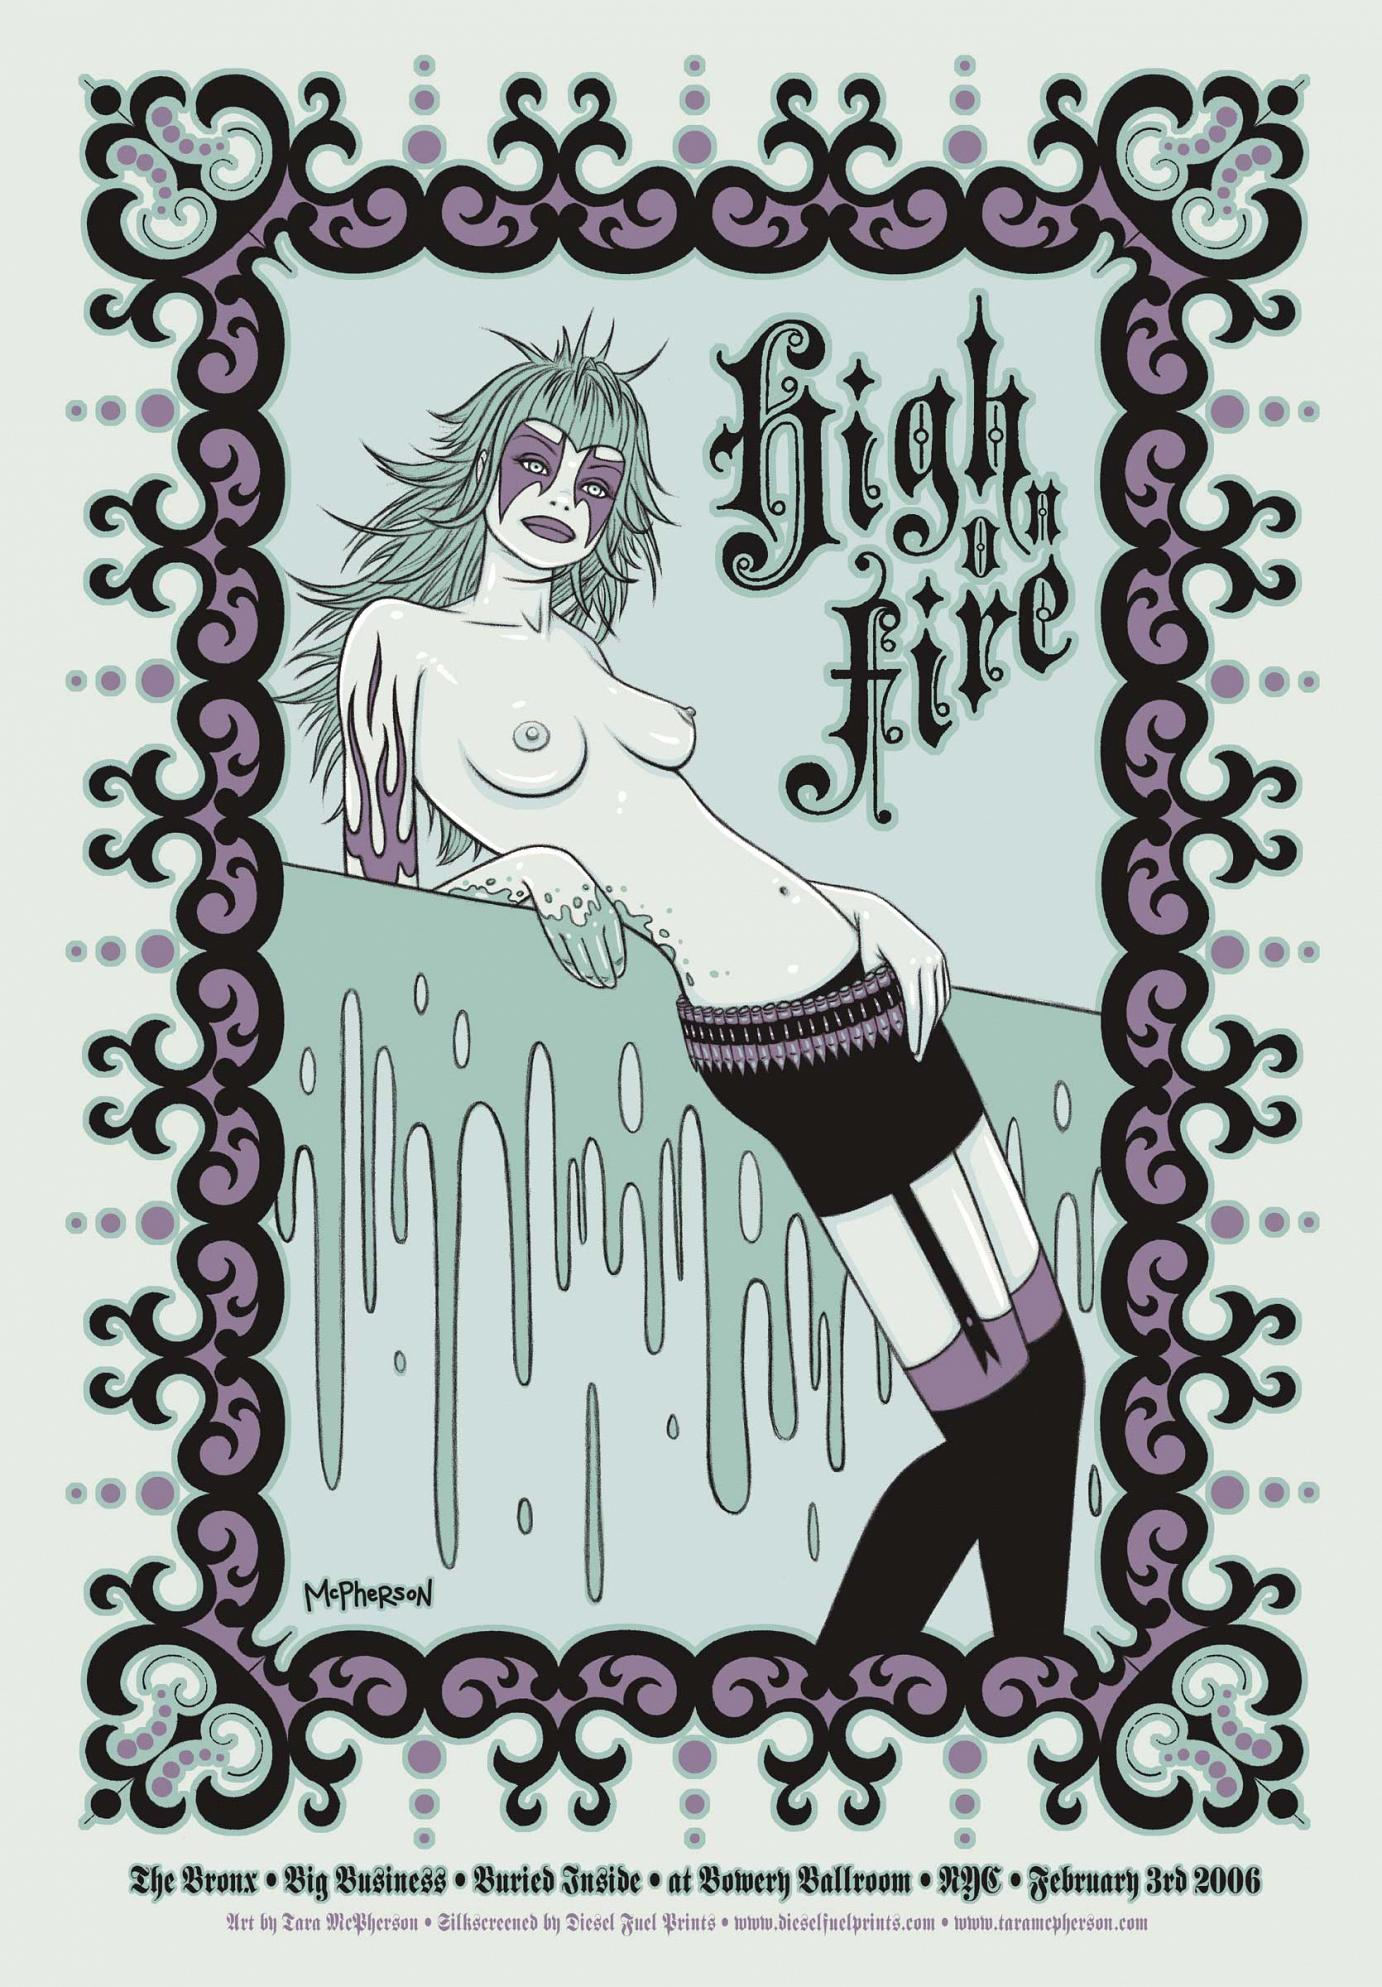 »High on Fire« von Tara McPherson | 5 Color Silkscreen | 40,64 x 58,42cm | Edition of 300 | 2006